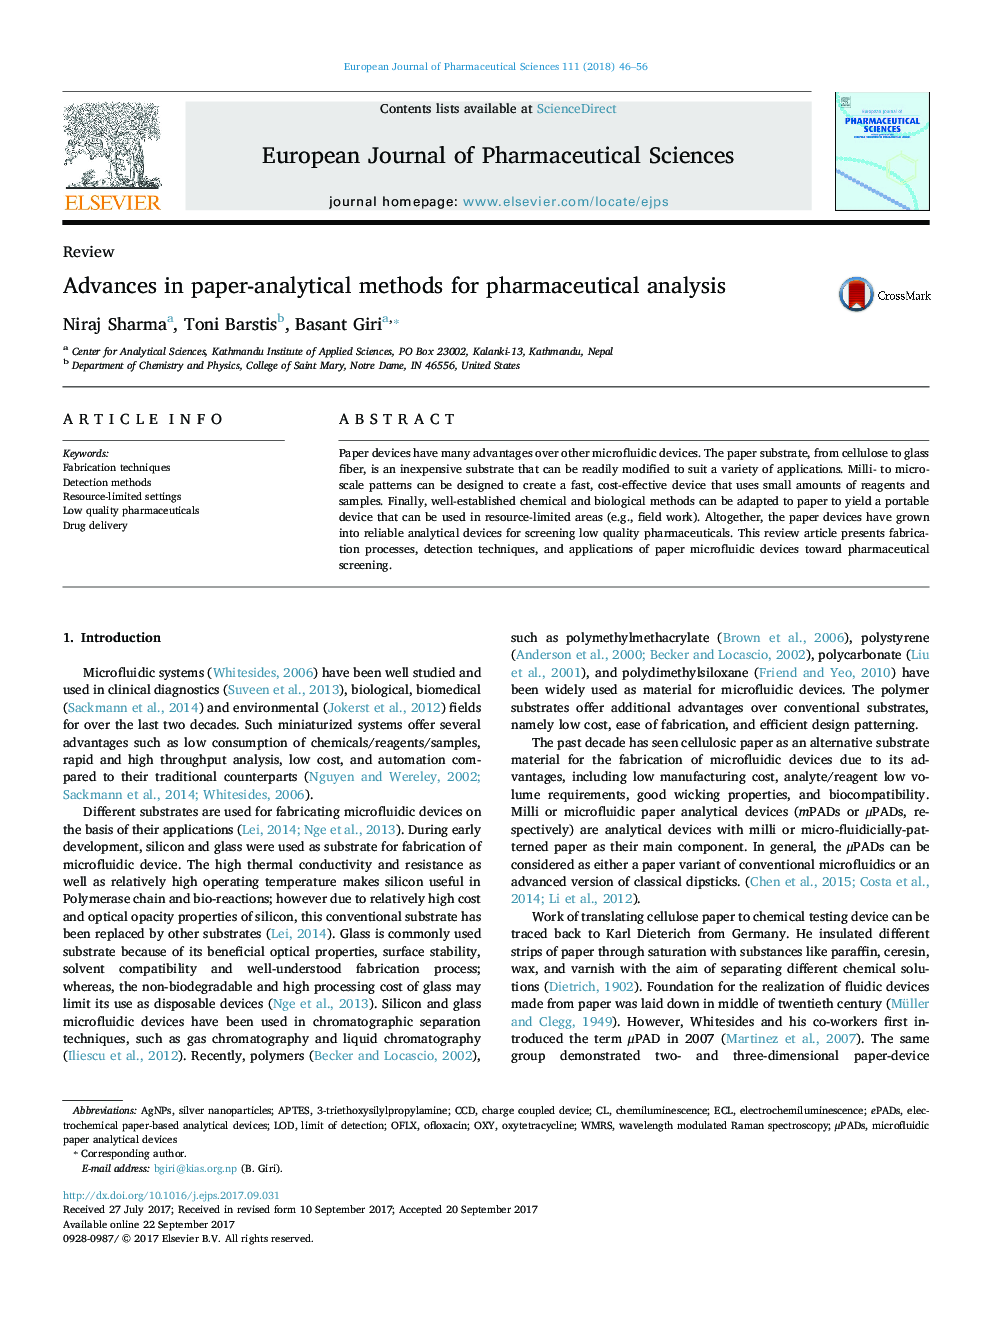 Advances in paper-analytical methods for pharmaceutical analysis